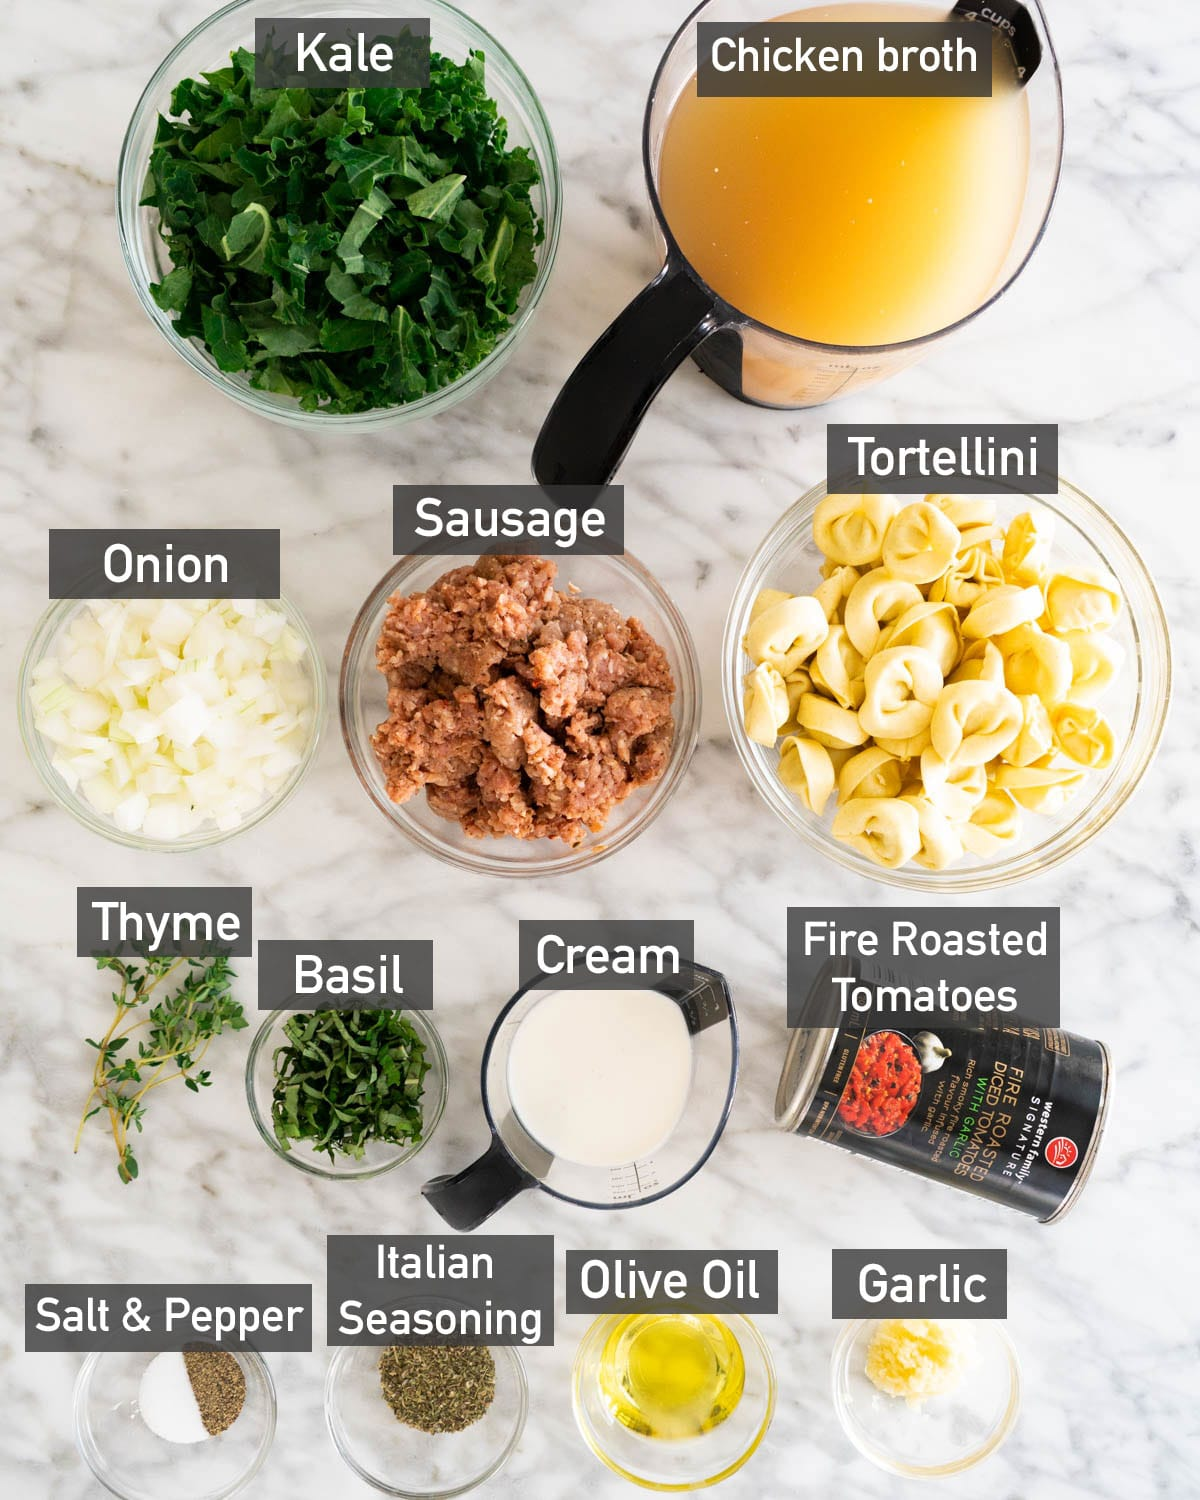 ingredients used to make creamy tortellini soup with sausage